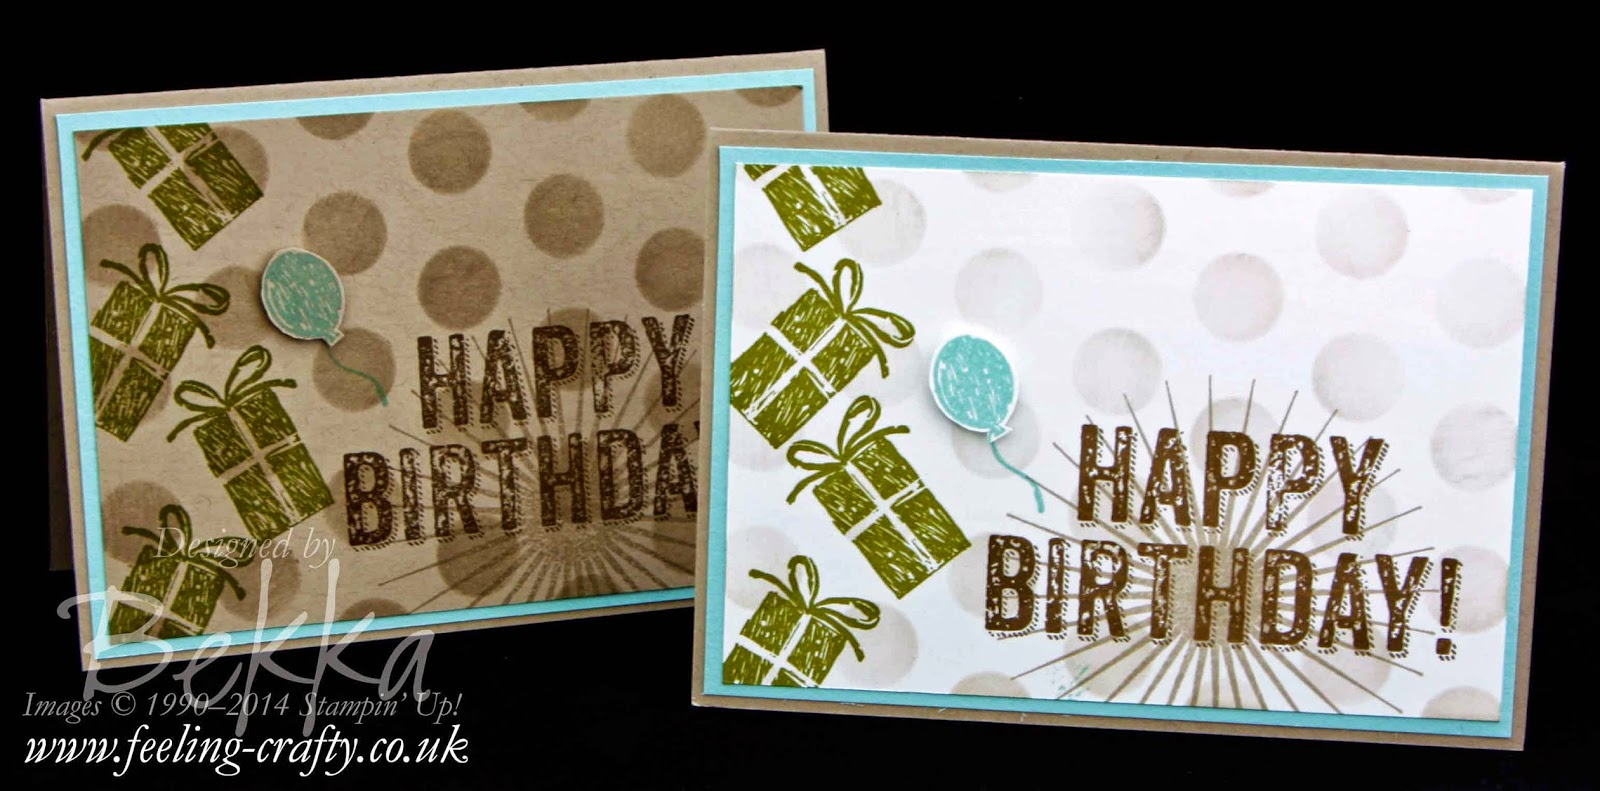 Birthday Surprise from Stampin' Up! UK - check out this blog for lots of great ideas